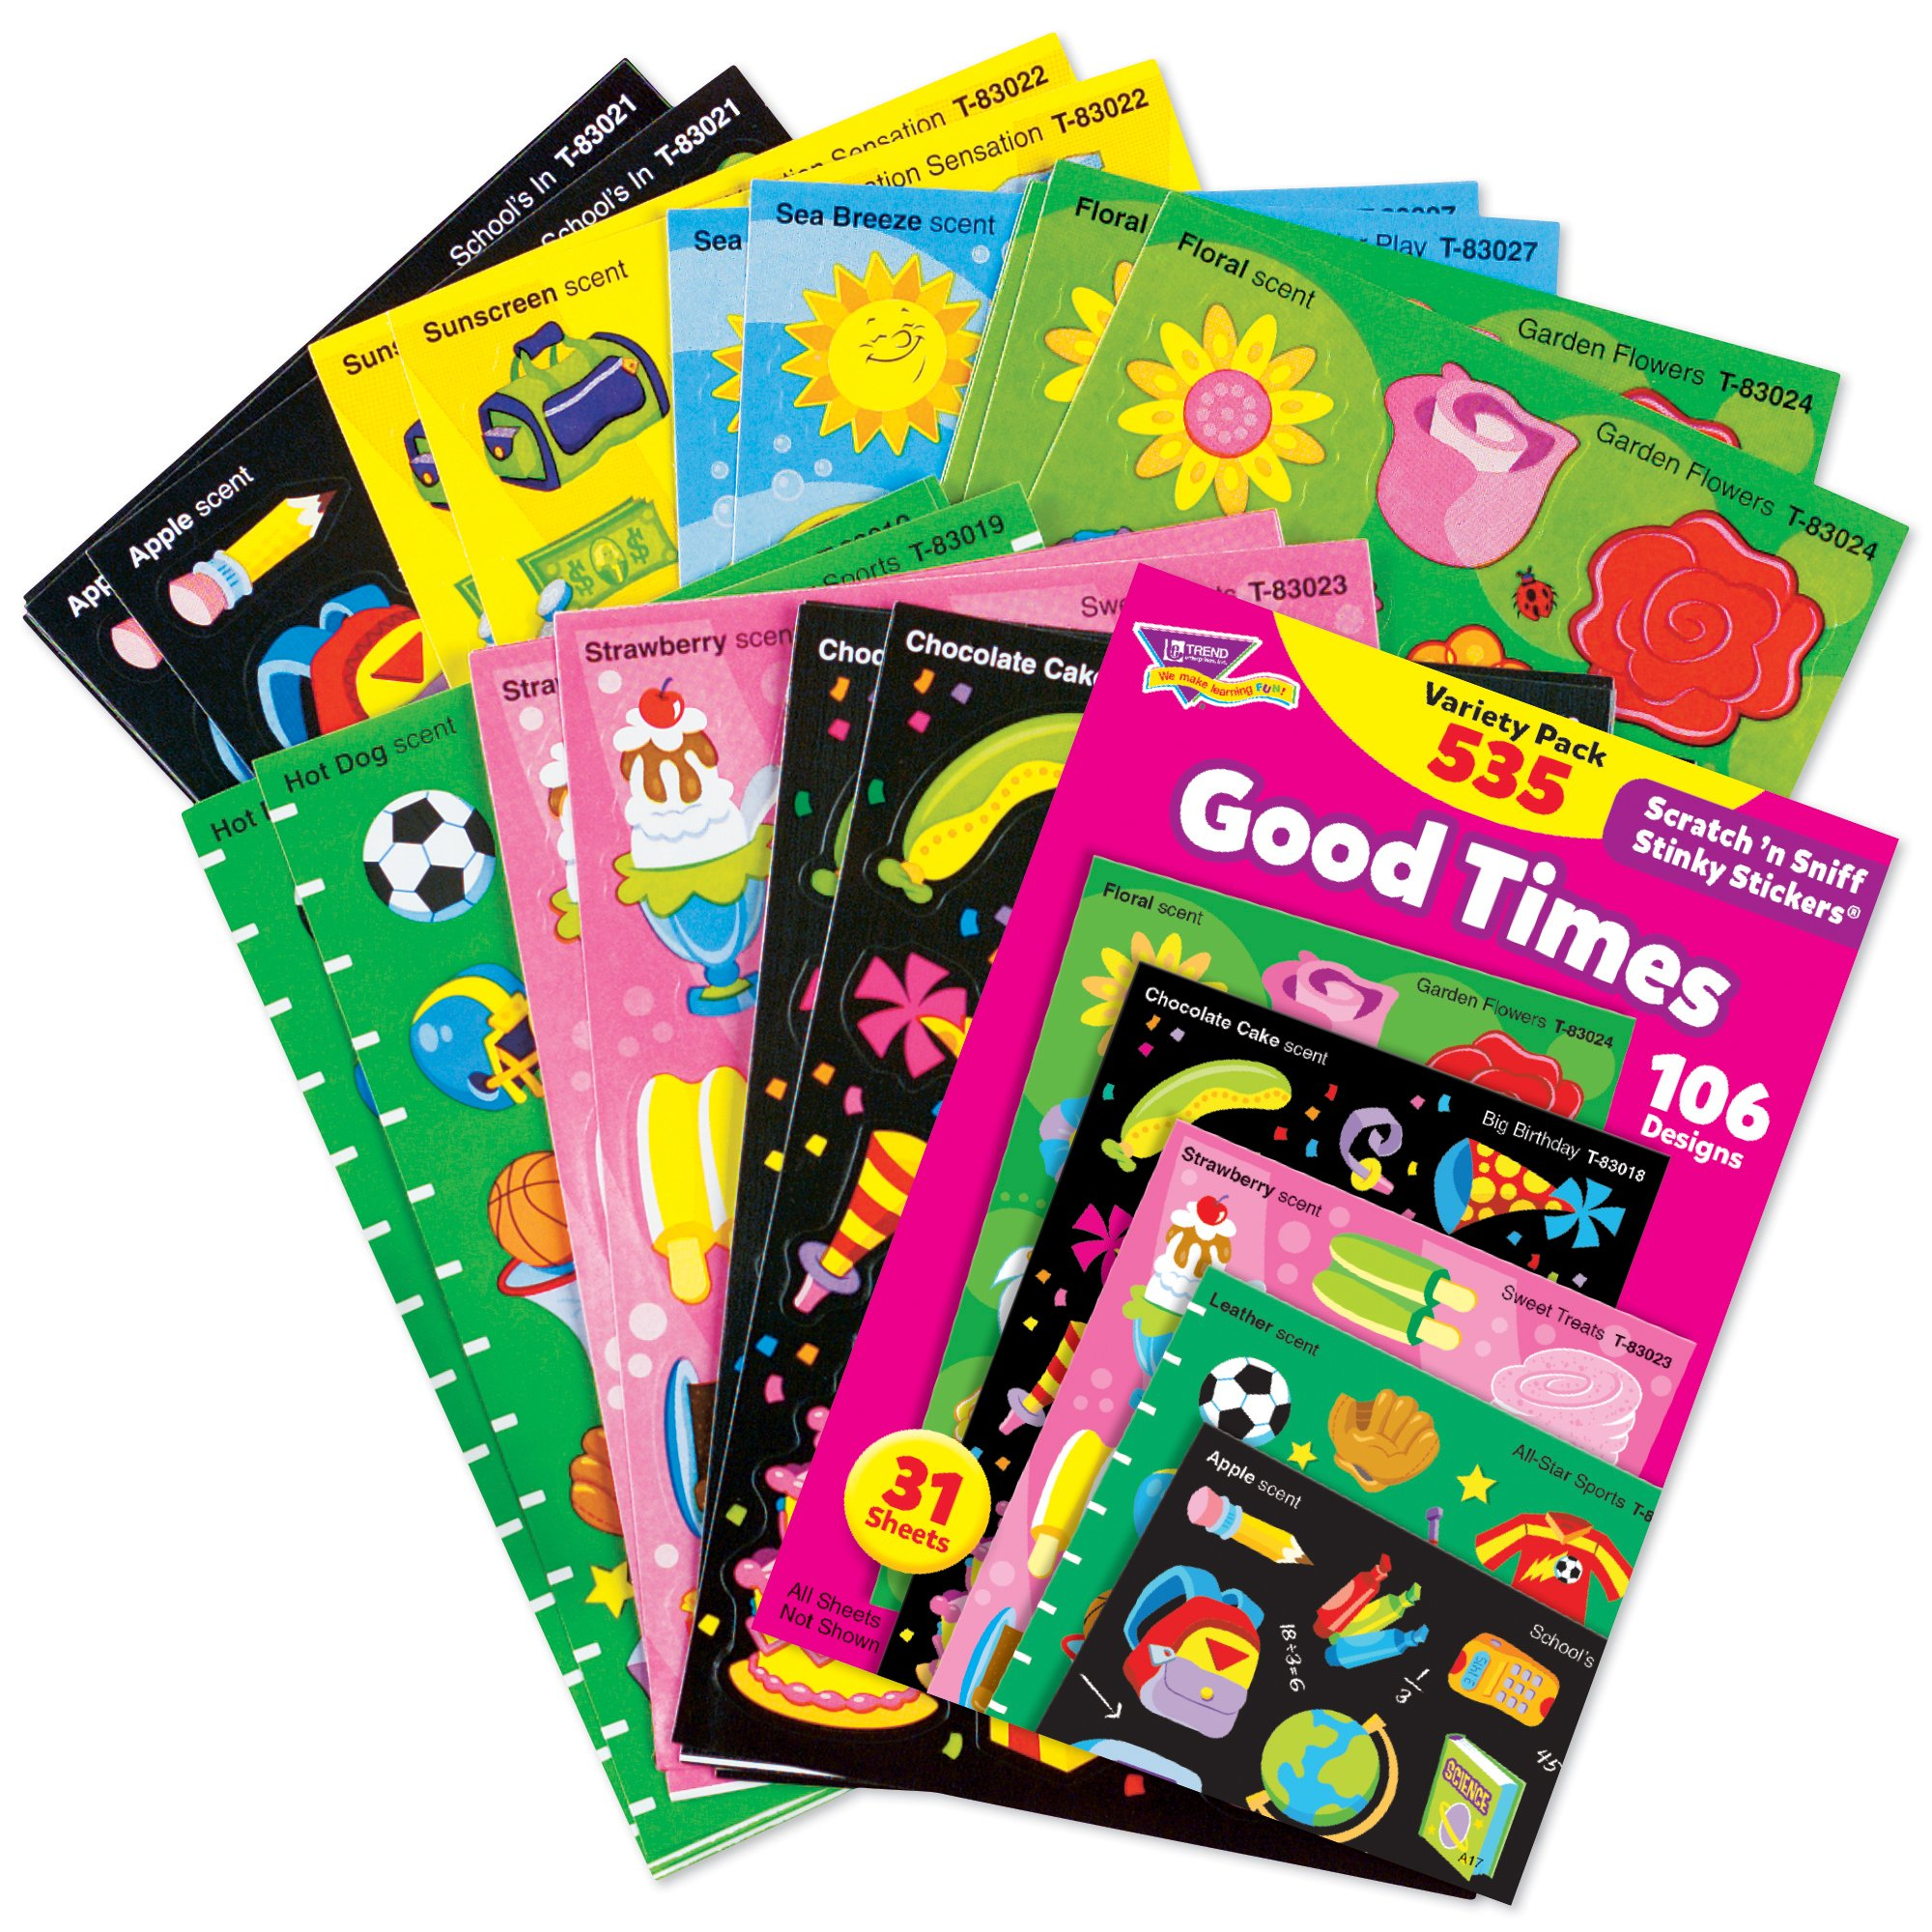 Trend Enterprises Stinky Sticker Mixed Shaped Good Times Jumbo Variety Pack Sticker, 3/4 in, Pack of 535